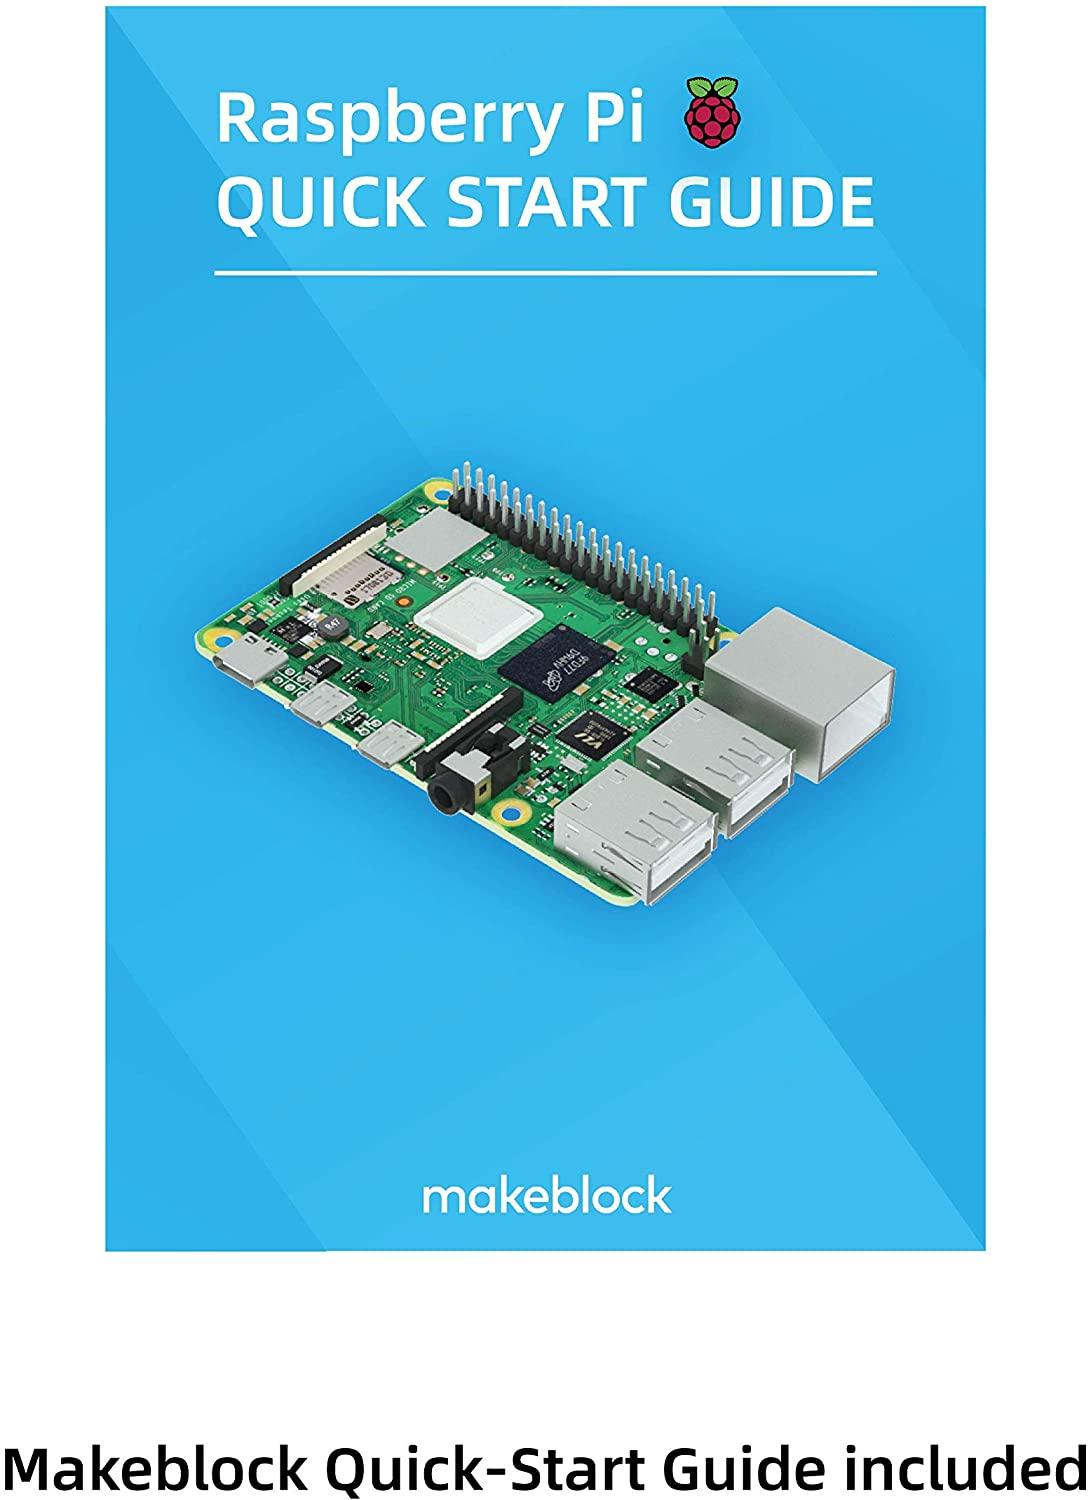 Makeblock Raspberry Pi 4B Complete Starter Kit With Model B Plus Motherboard, 16GB Micro SD Card, 5V 3A On/Off Power Supply,